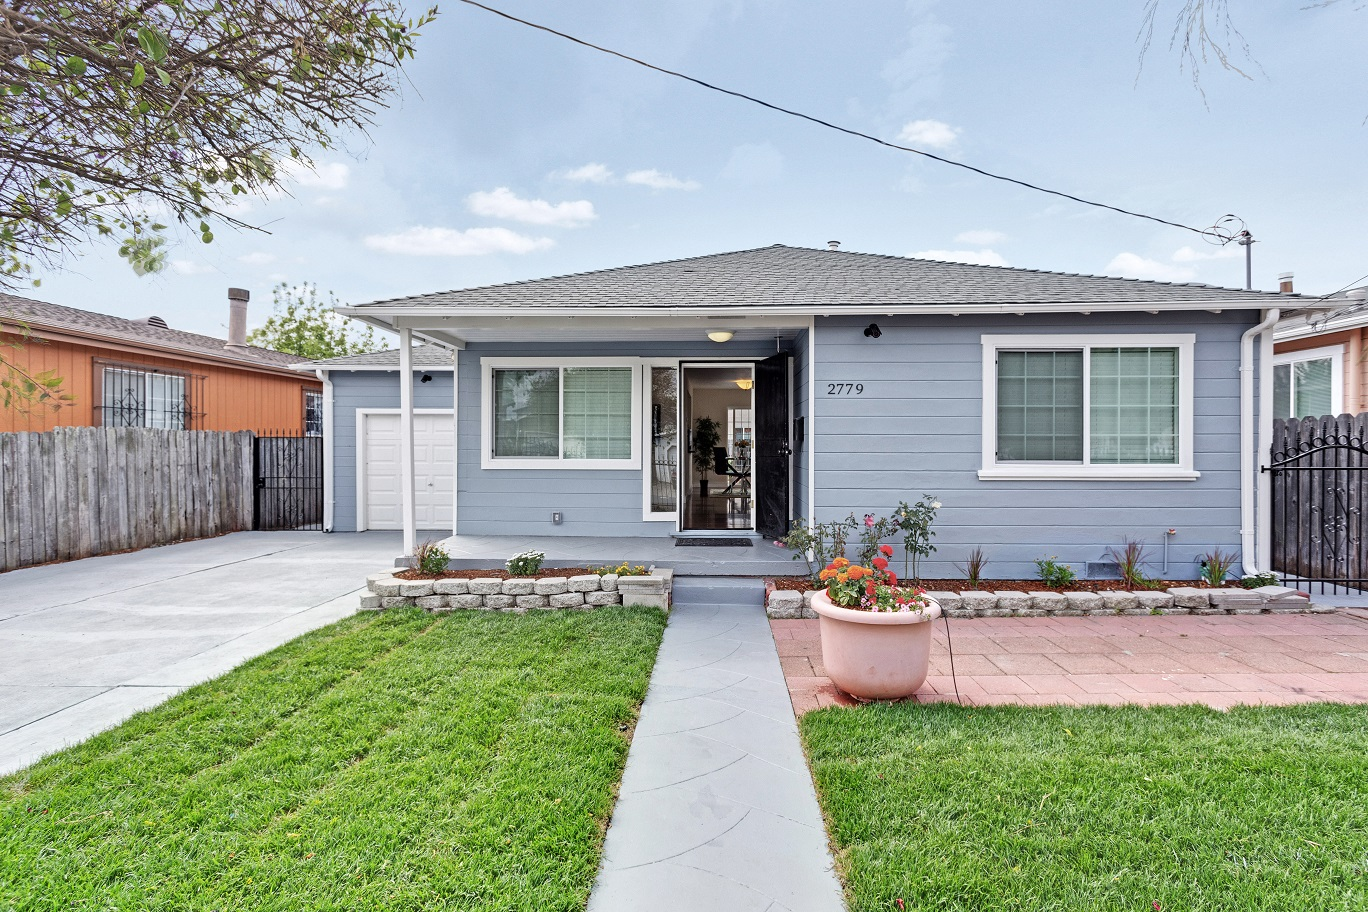 100 homes for rent in california 8 bedroom house for for 2 kitchen homes for rent